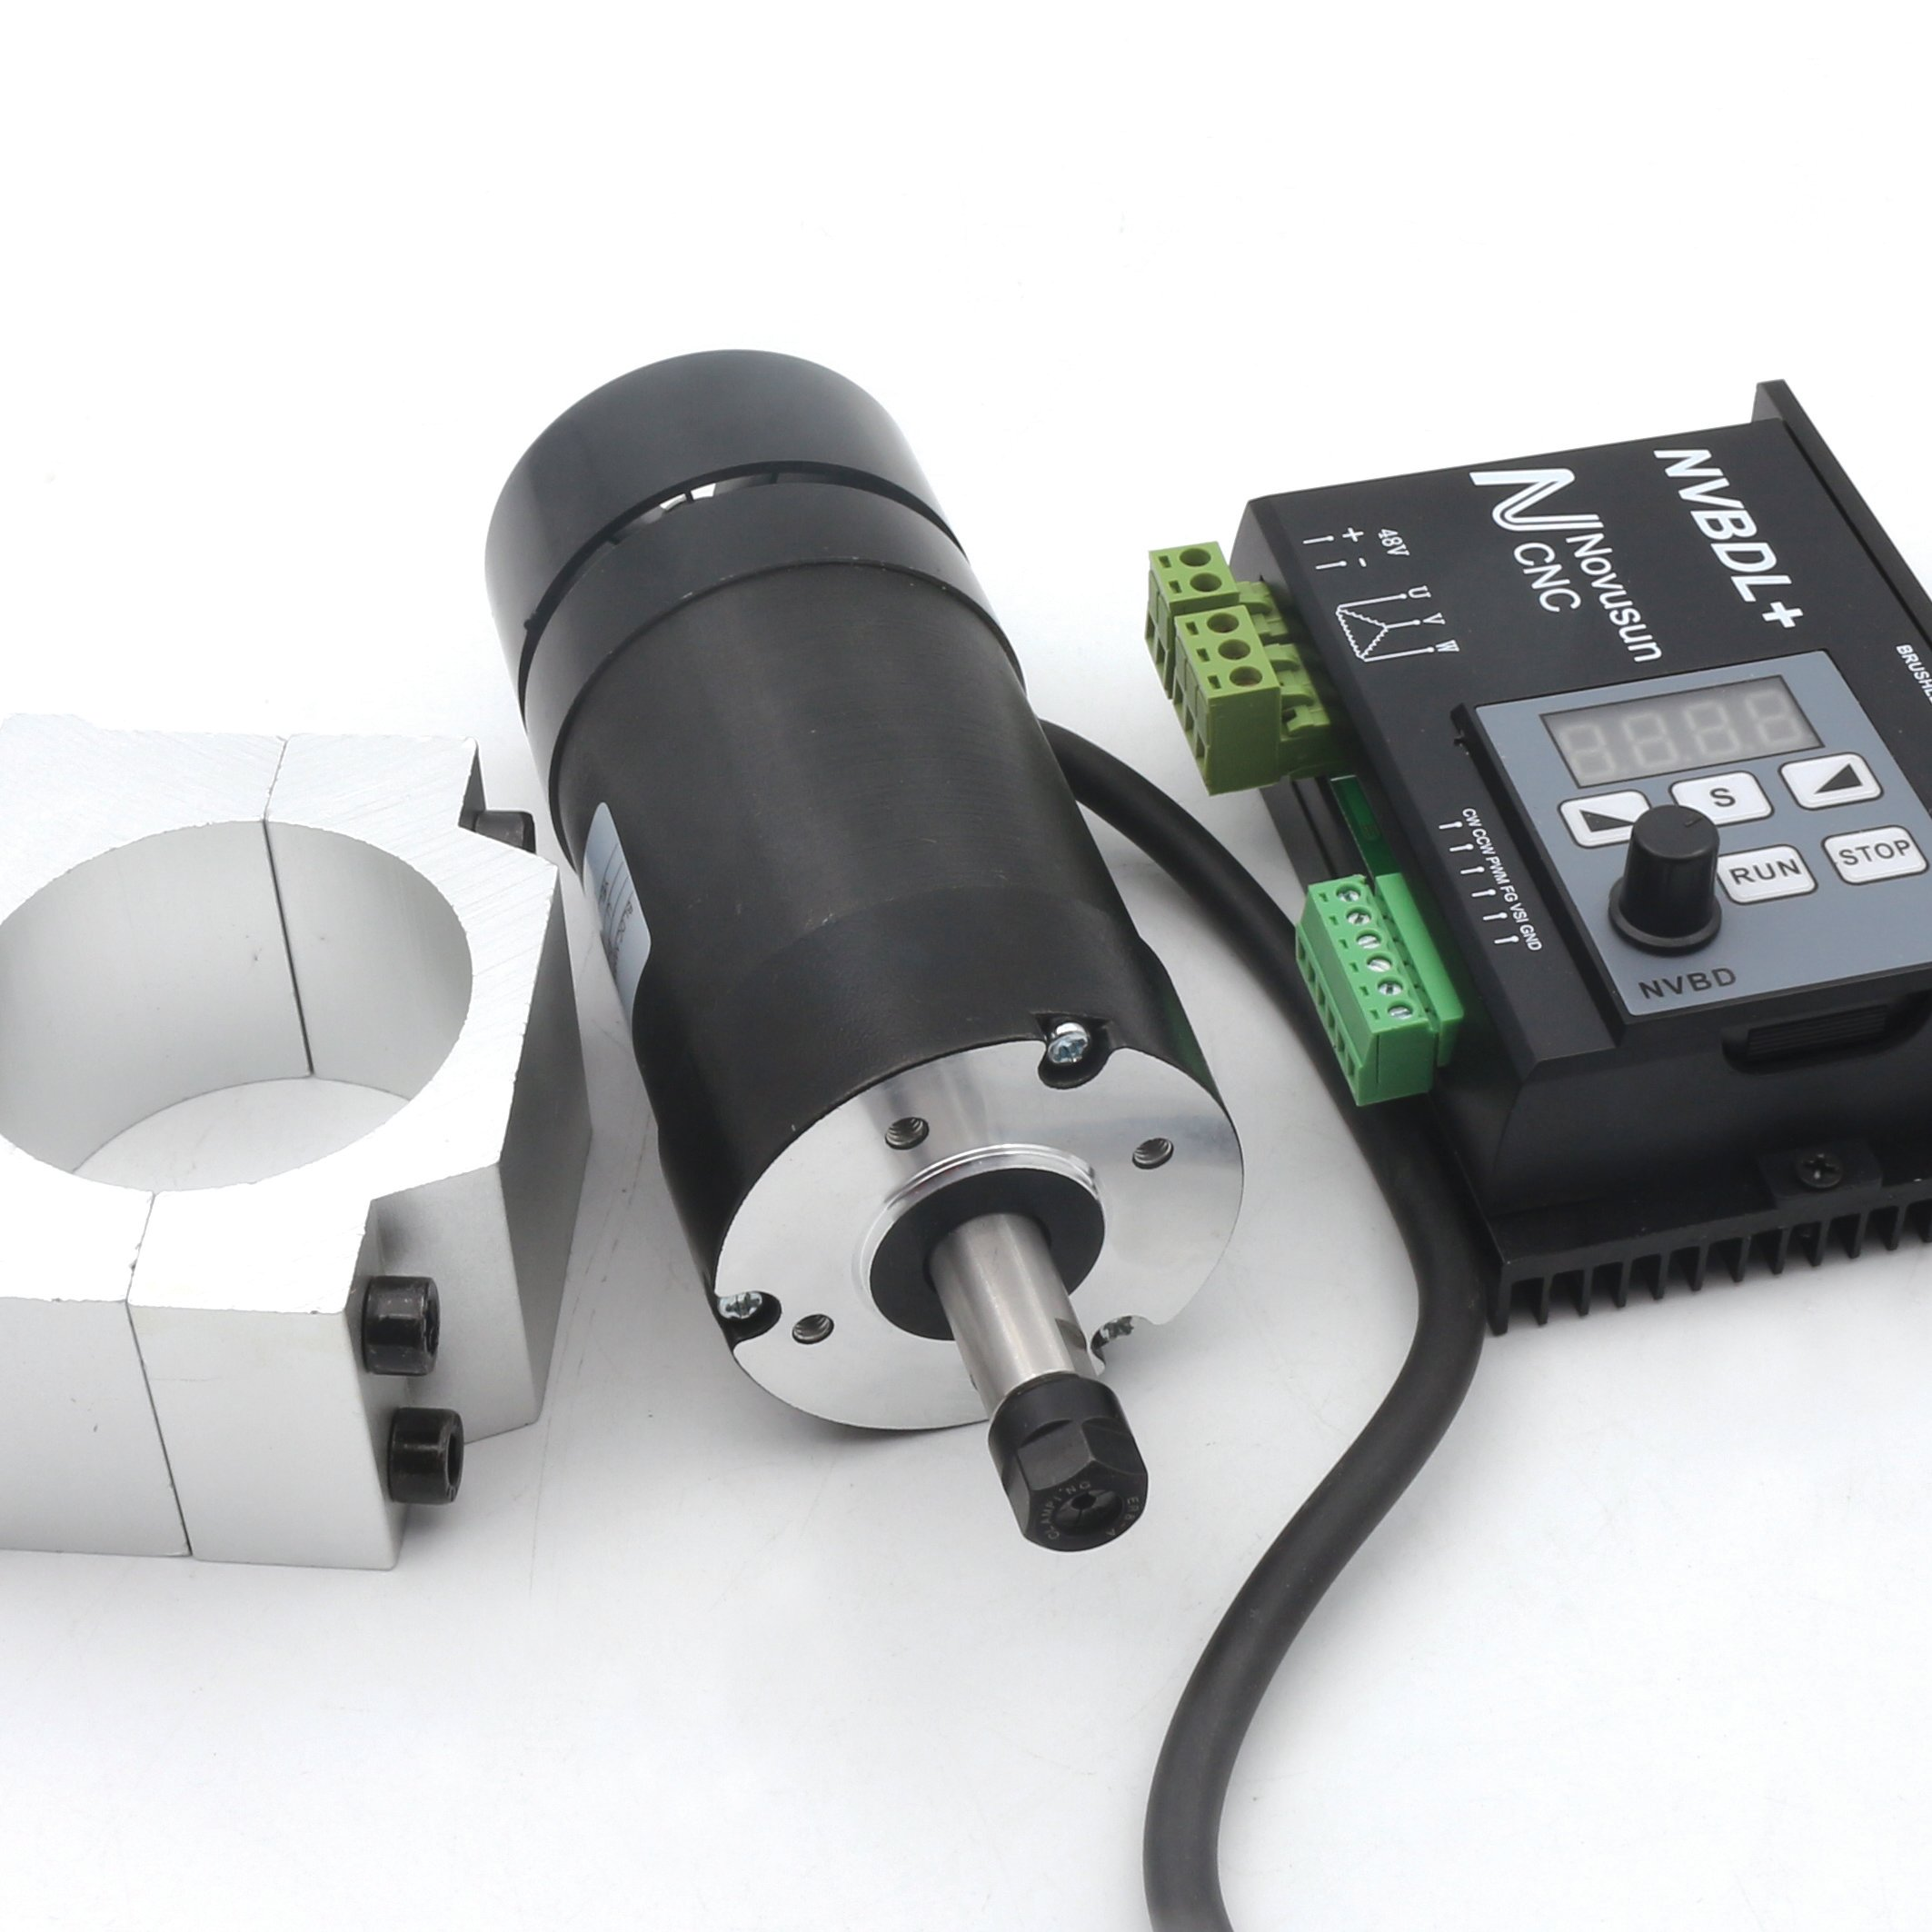 400W CNC DC Air Cooled Spindle Motor ER8 NVBDL+ 12000rpm Brushless Spindle Motor kit + 600w Brushless Motor Driver Without Hall LCD Panel + 55mm Mount Bracket 【For small and medium-sized processing】 by RATTMMOTOR